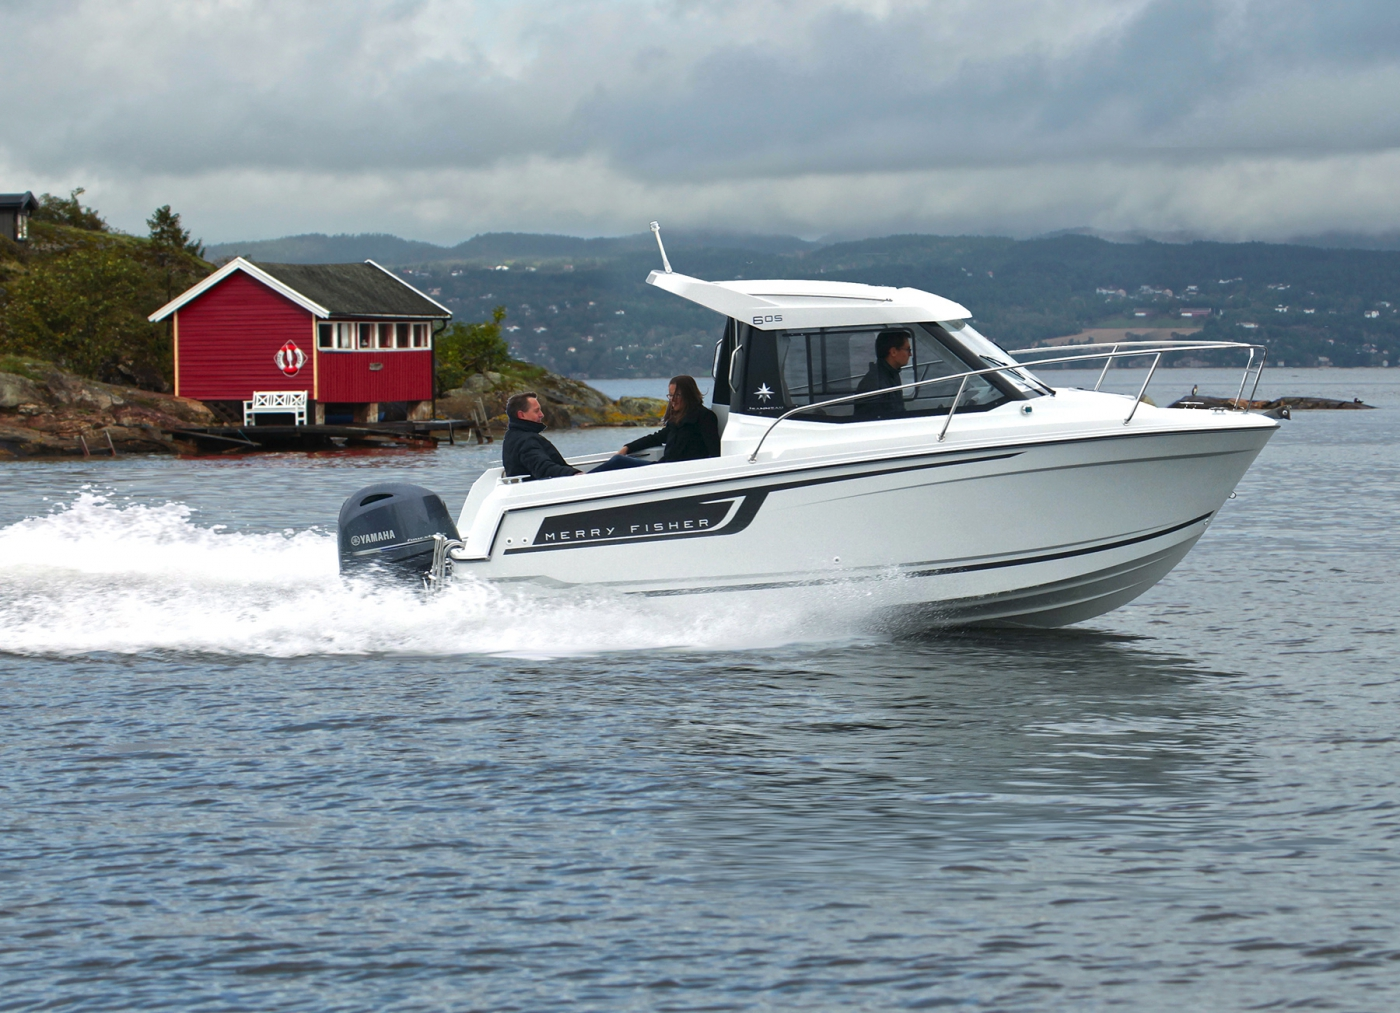 Jeanneau Merry Fisher 605 Motor Boat - Sea Ventures